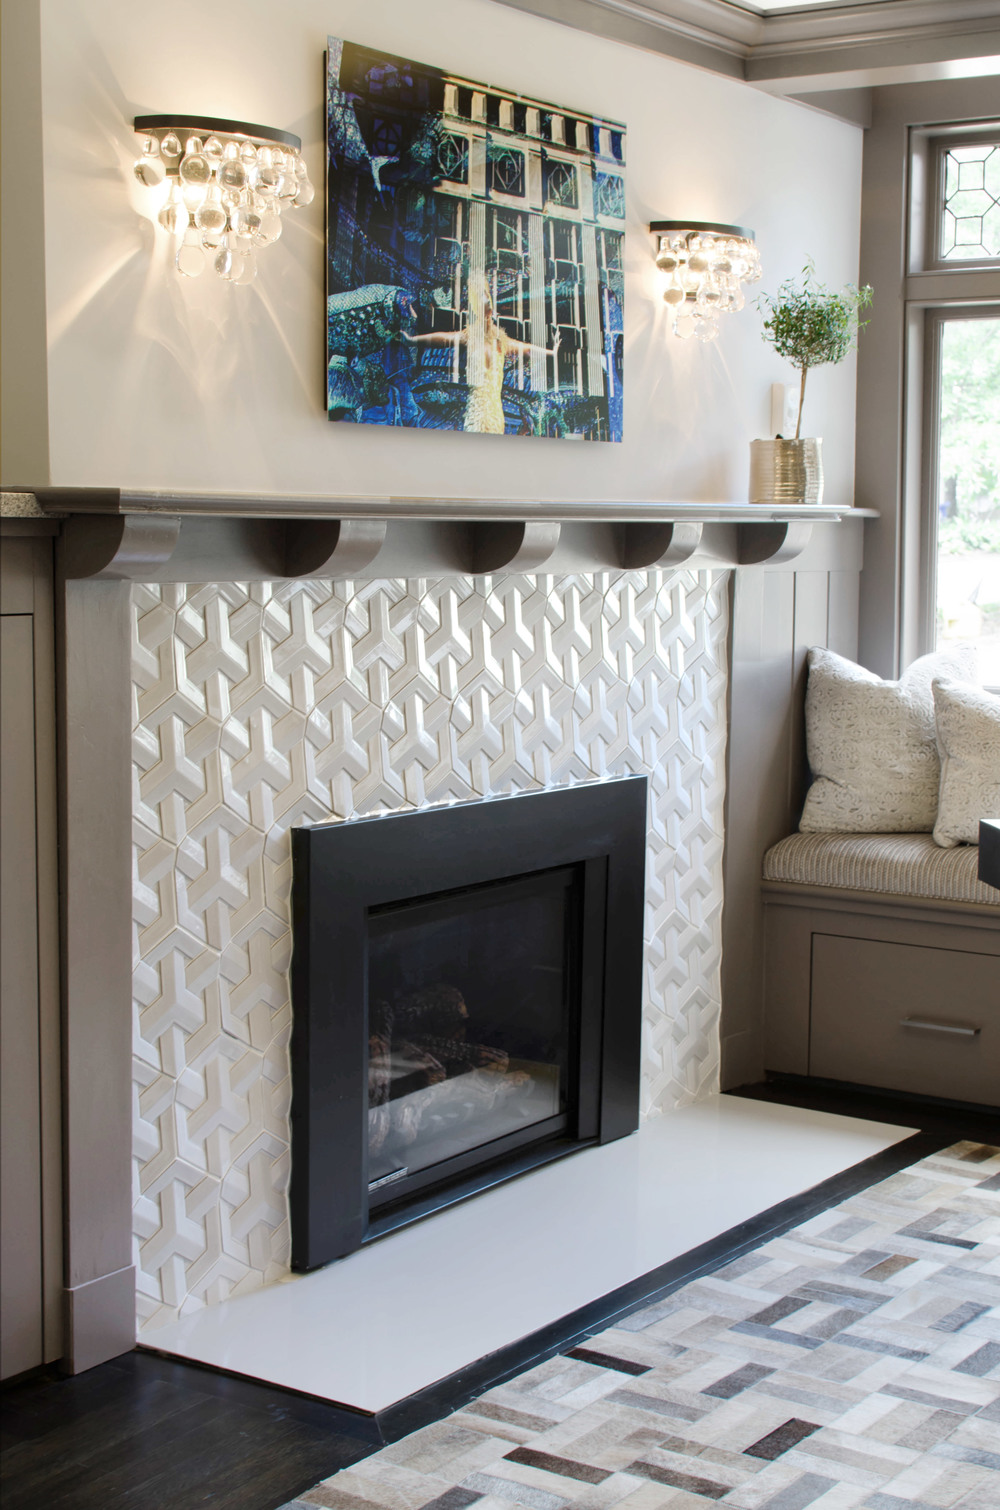 HomeOfficeFireplace-GrayscaleDesign.jpg